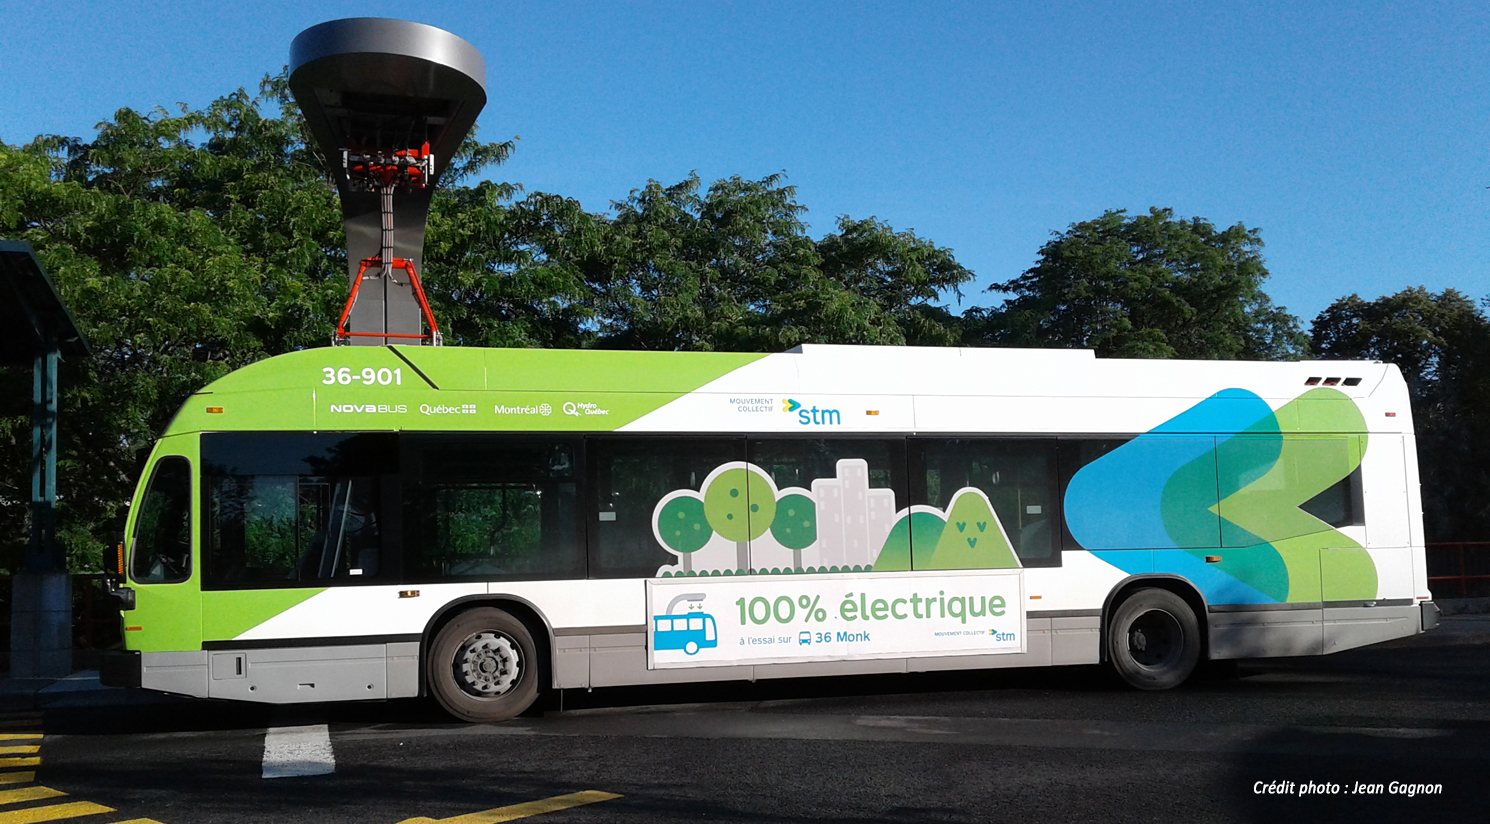 Feasibility Study for the Electrification of an STM Bus Garage